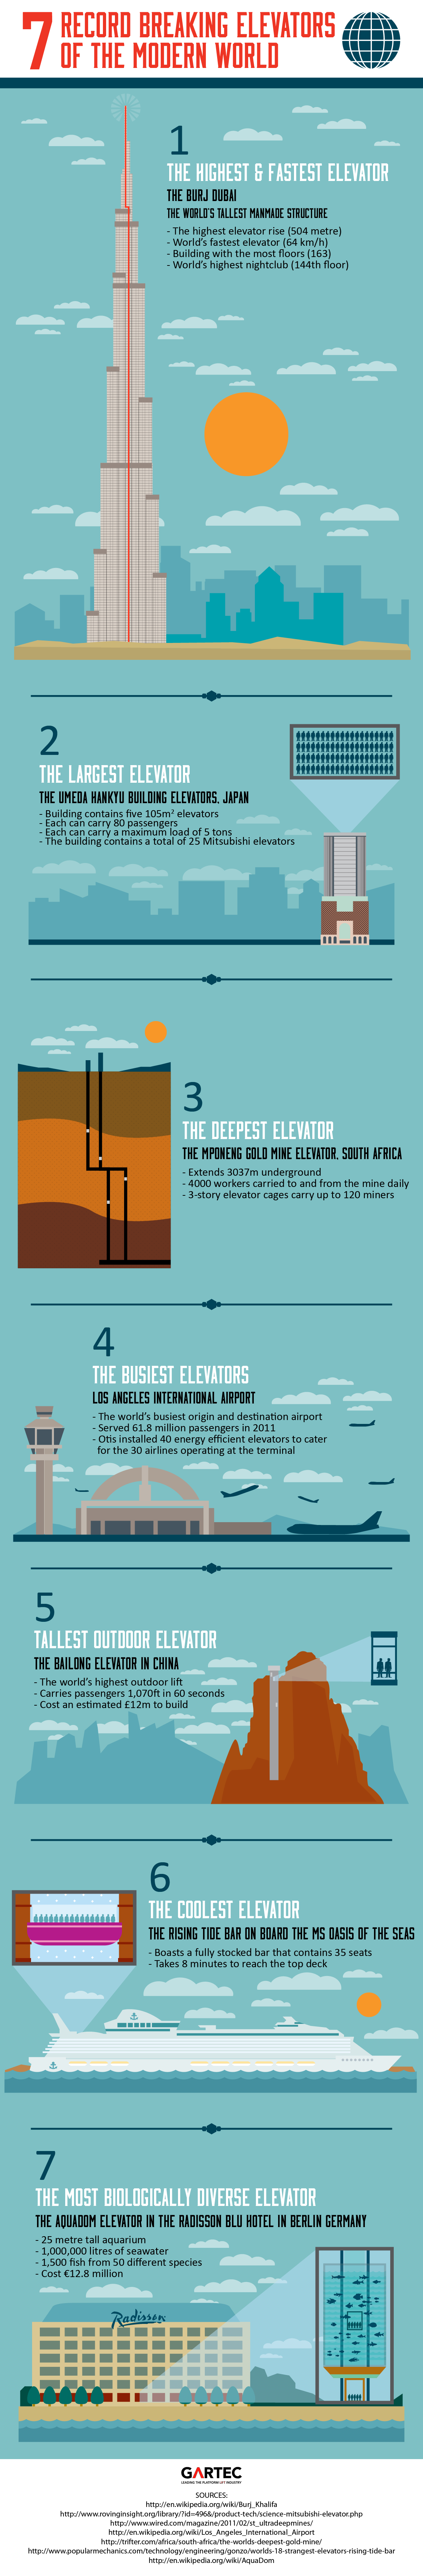 Amazing Elevators-Infographic